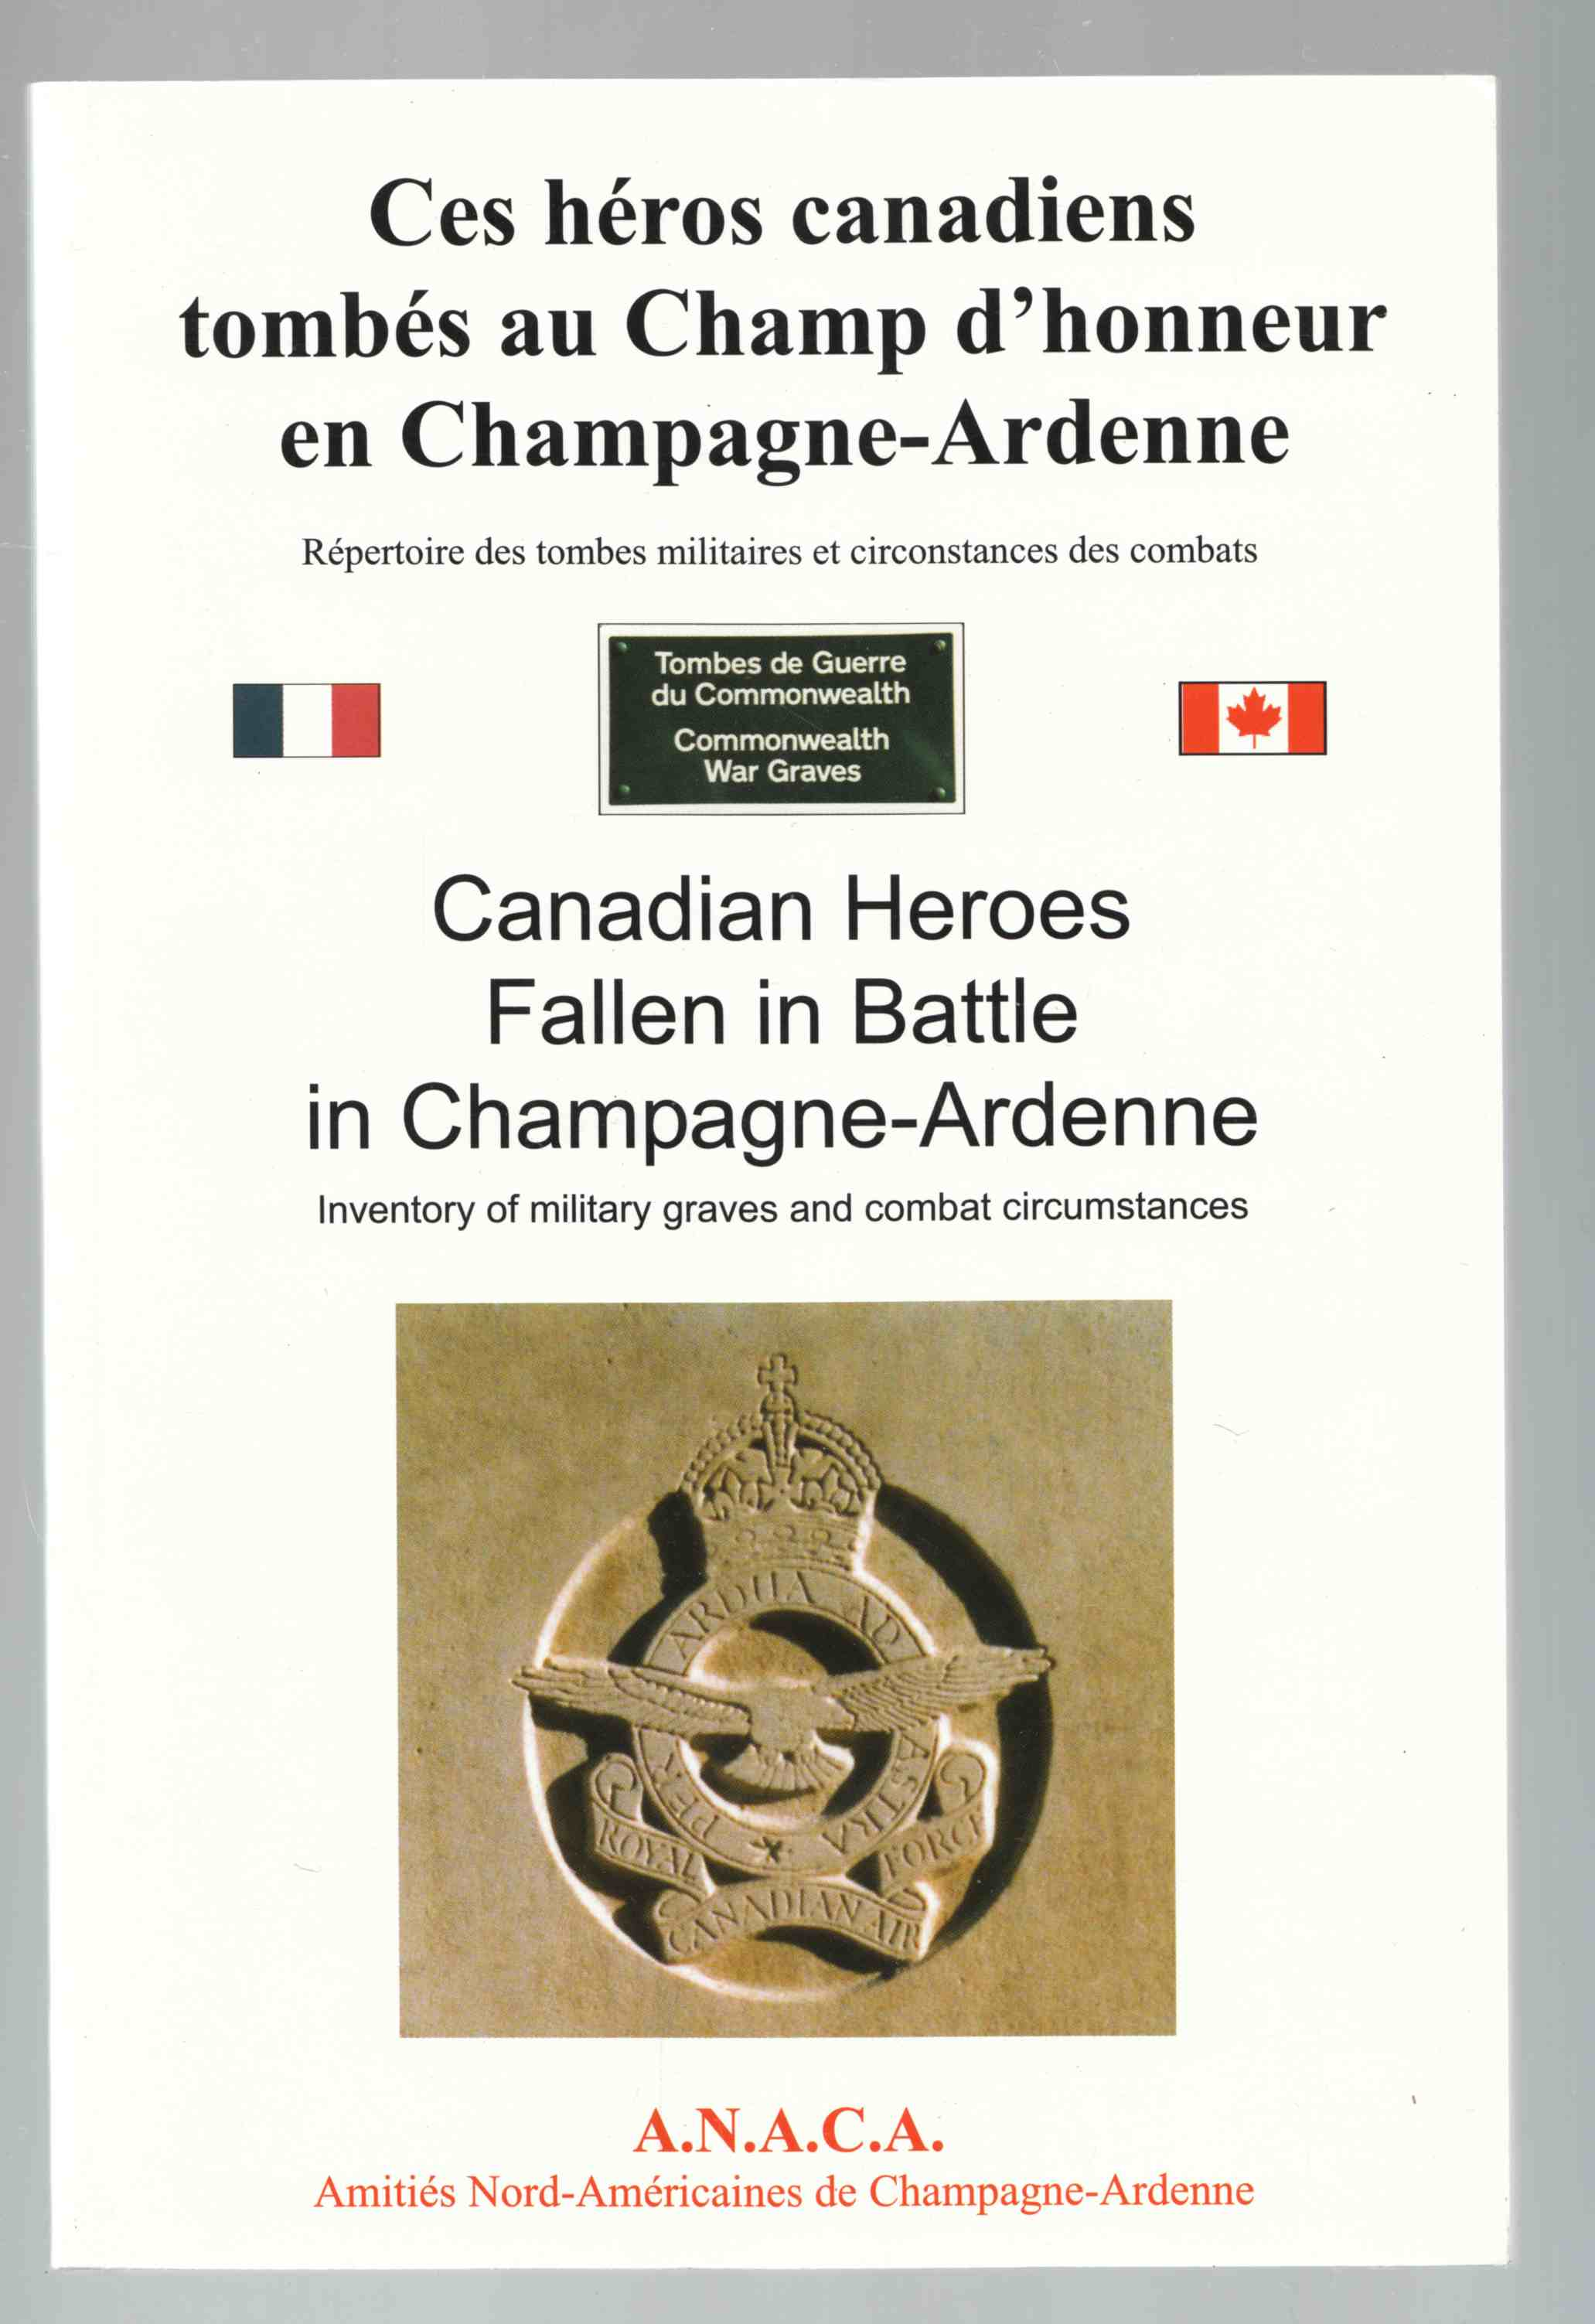 Image for Canadian Heroes Fallen in Battle in Champagne-Ardenne / Ces Heros Canadiens Tombes Au Champ D'Honneur En Champagne-Ardenne Inventory of Military Graves and Combat Circumstances / Repertoire Des Tombes Militaires Et Circonstances Des Combats